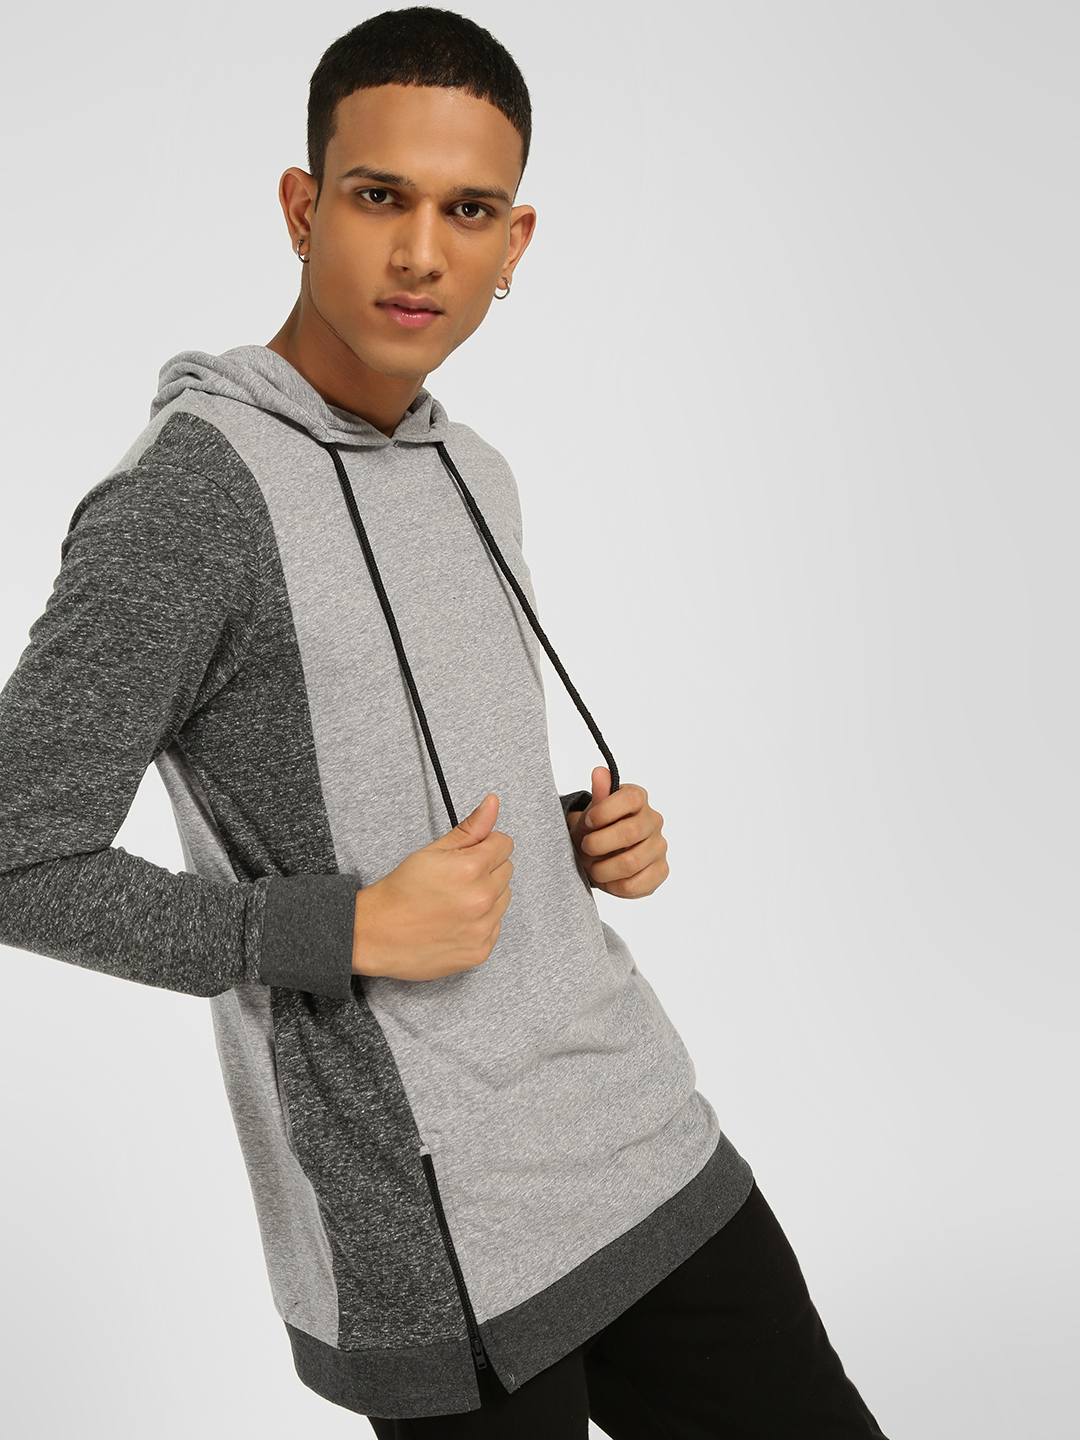 SKULT By Shahid Kapoor Grey Cut & Sew Colour Block Hoodie 1